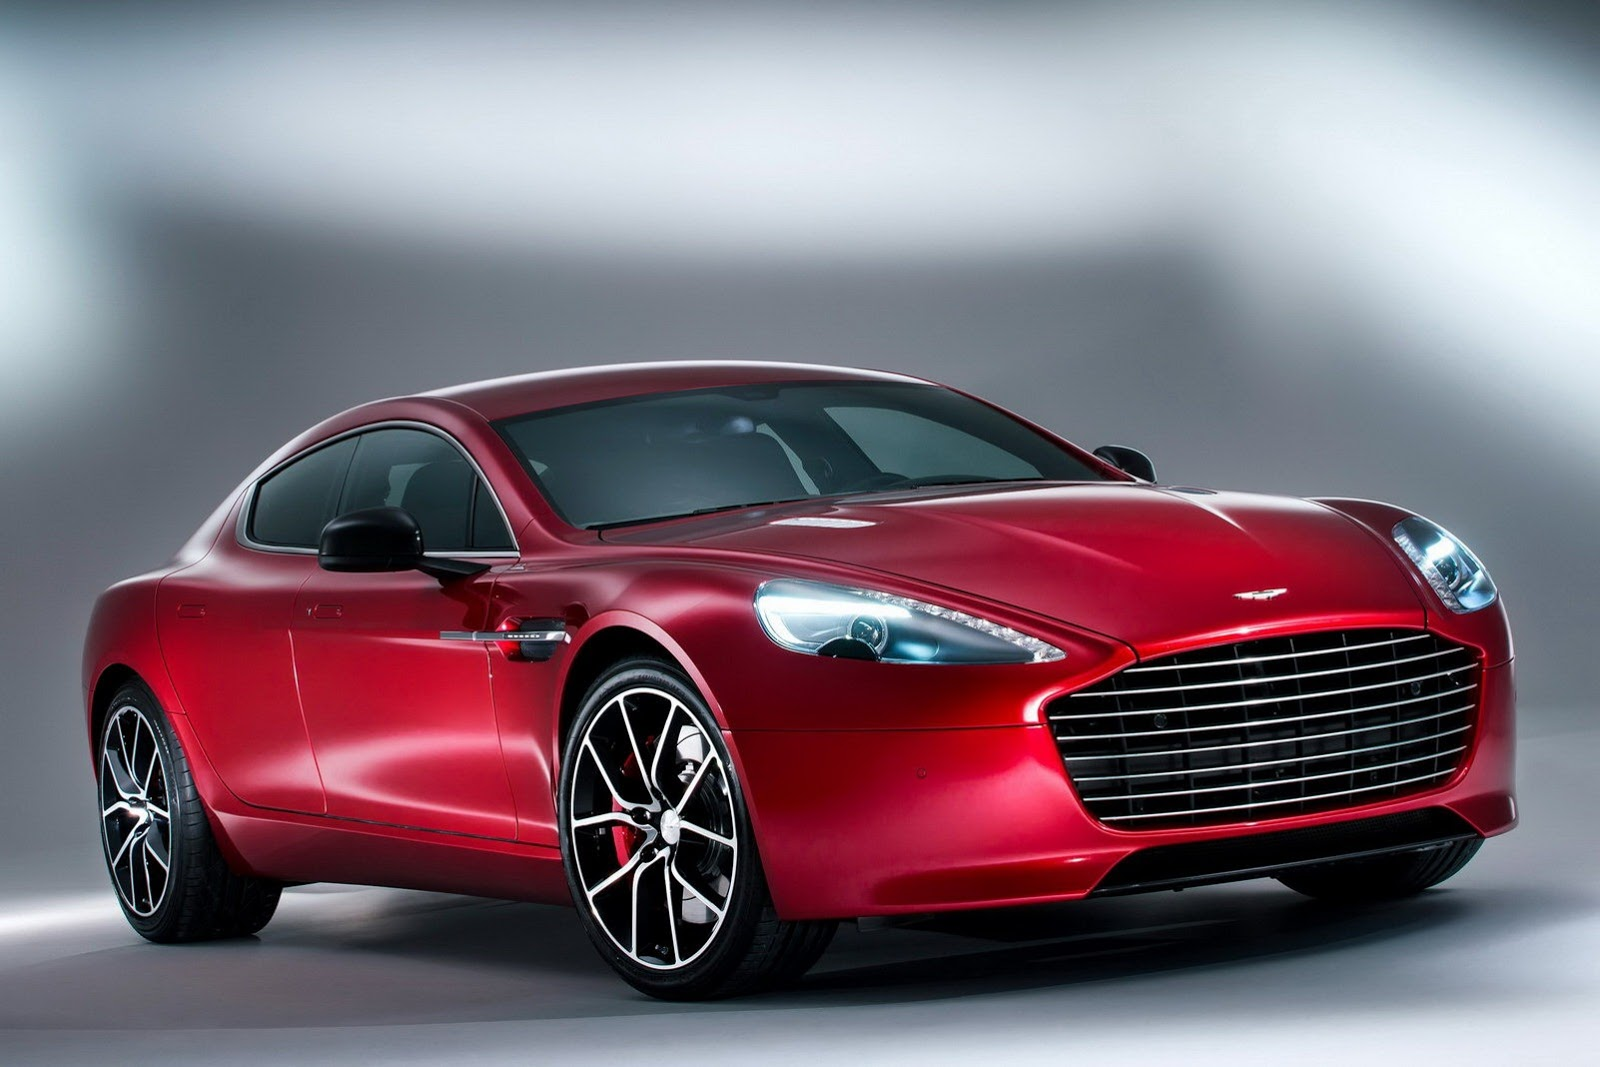 New Aston Martin Rapide S Photos And Details